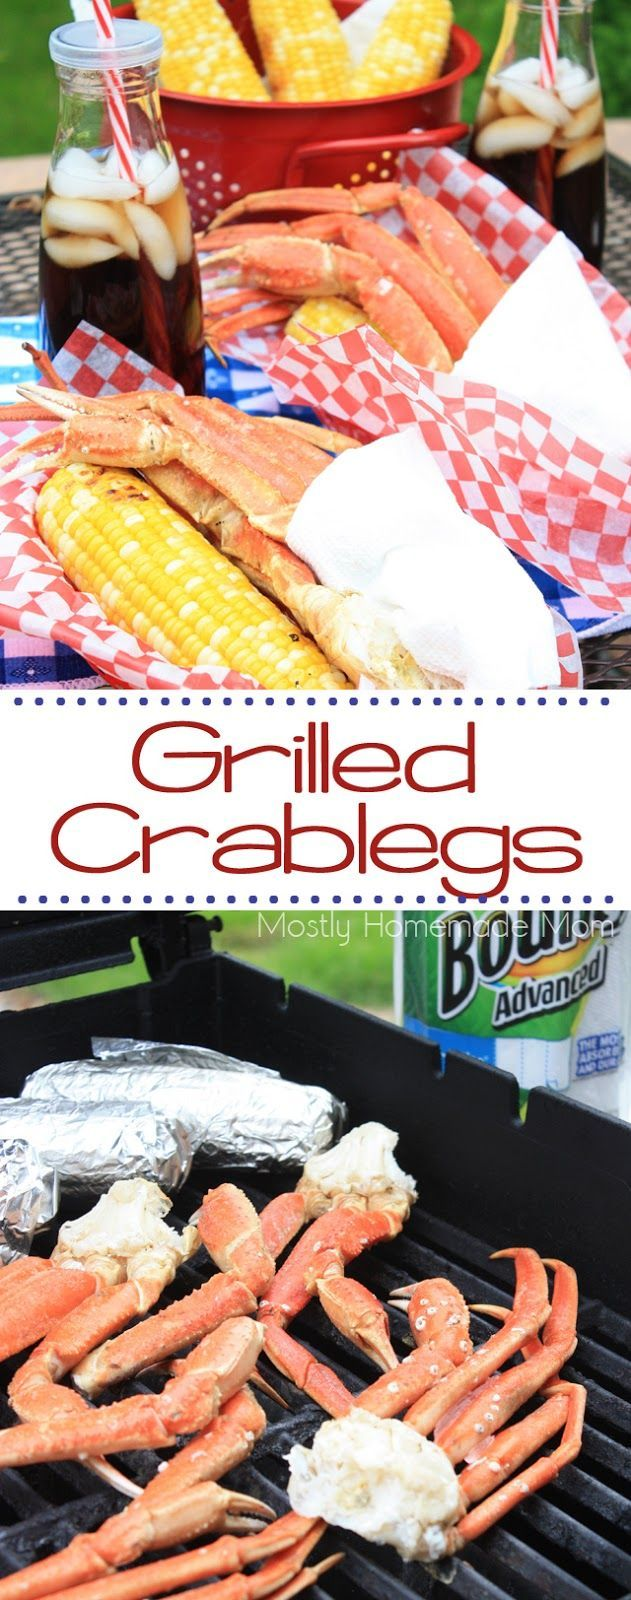 Grilled Crab Legs for your Summer BBQ! - You won't get this amazing sweet smoky flavor with steamed crab legs - try this EASY method for grilled crab legs on your backyard BBQ this summer!